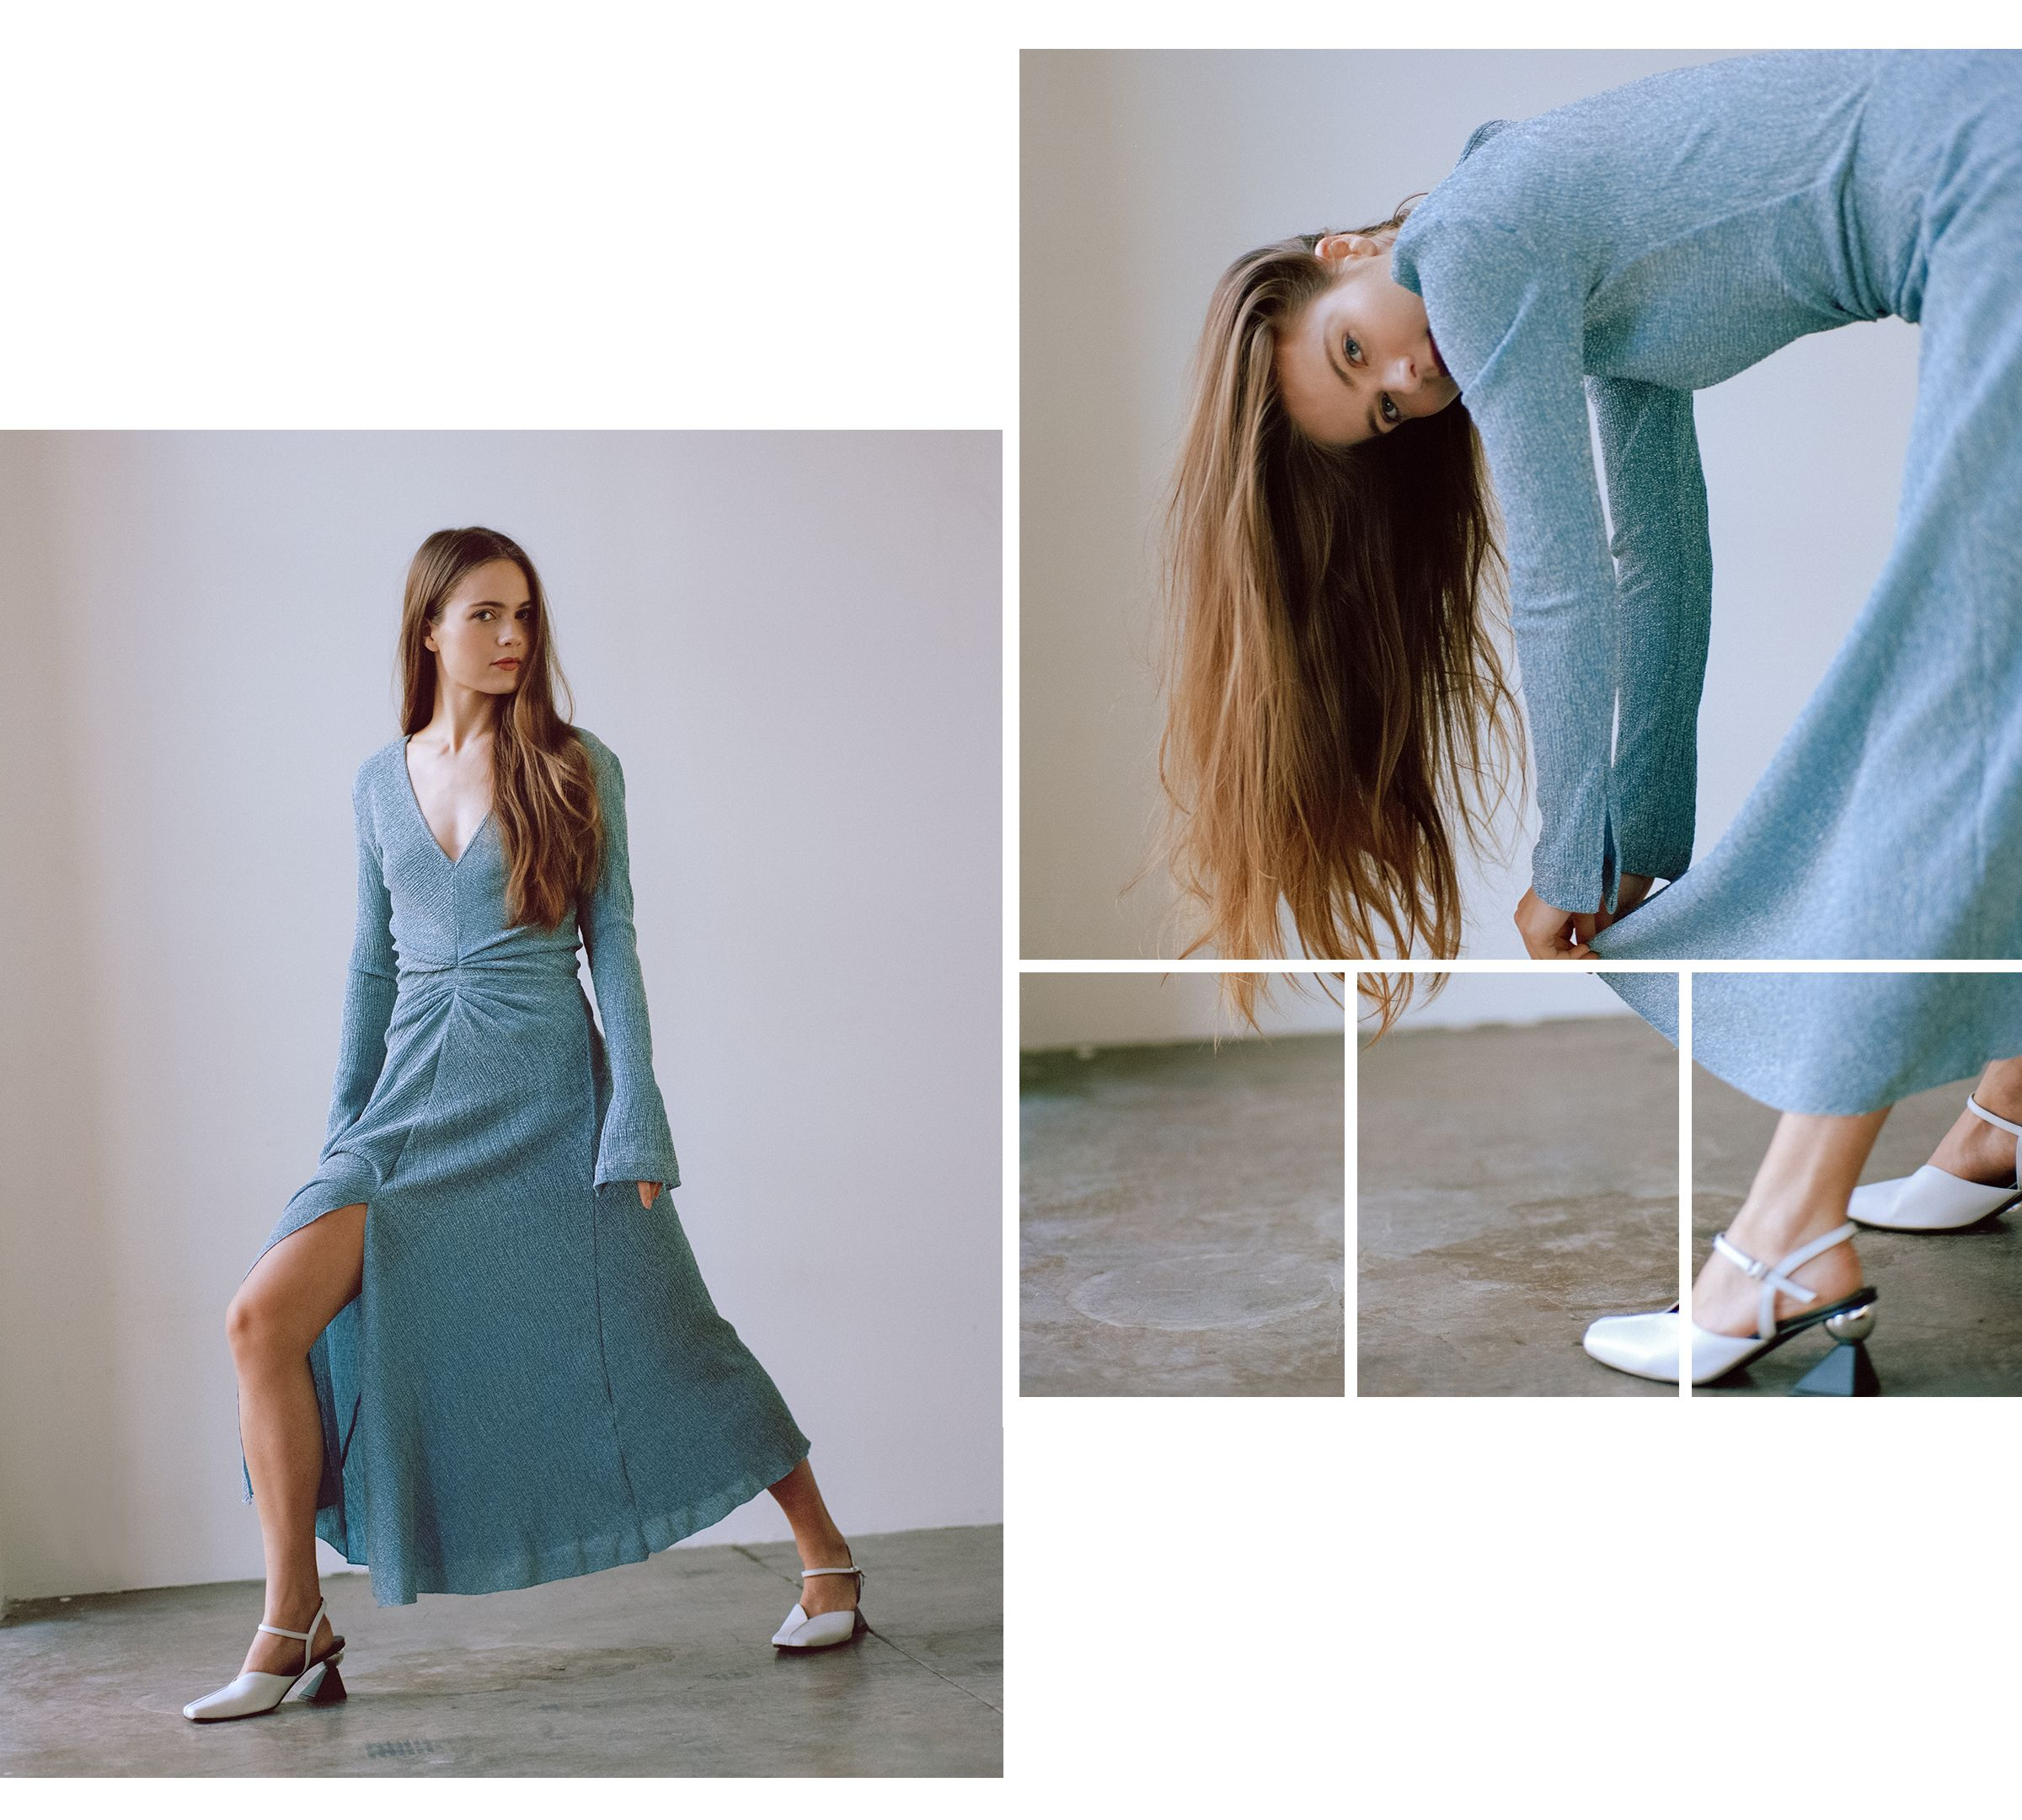 Hera Hilmar in metallic blue dress by Rotate and Yuul Yie heels.